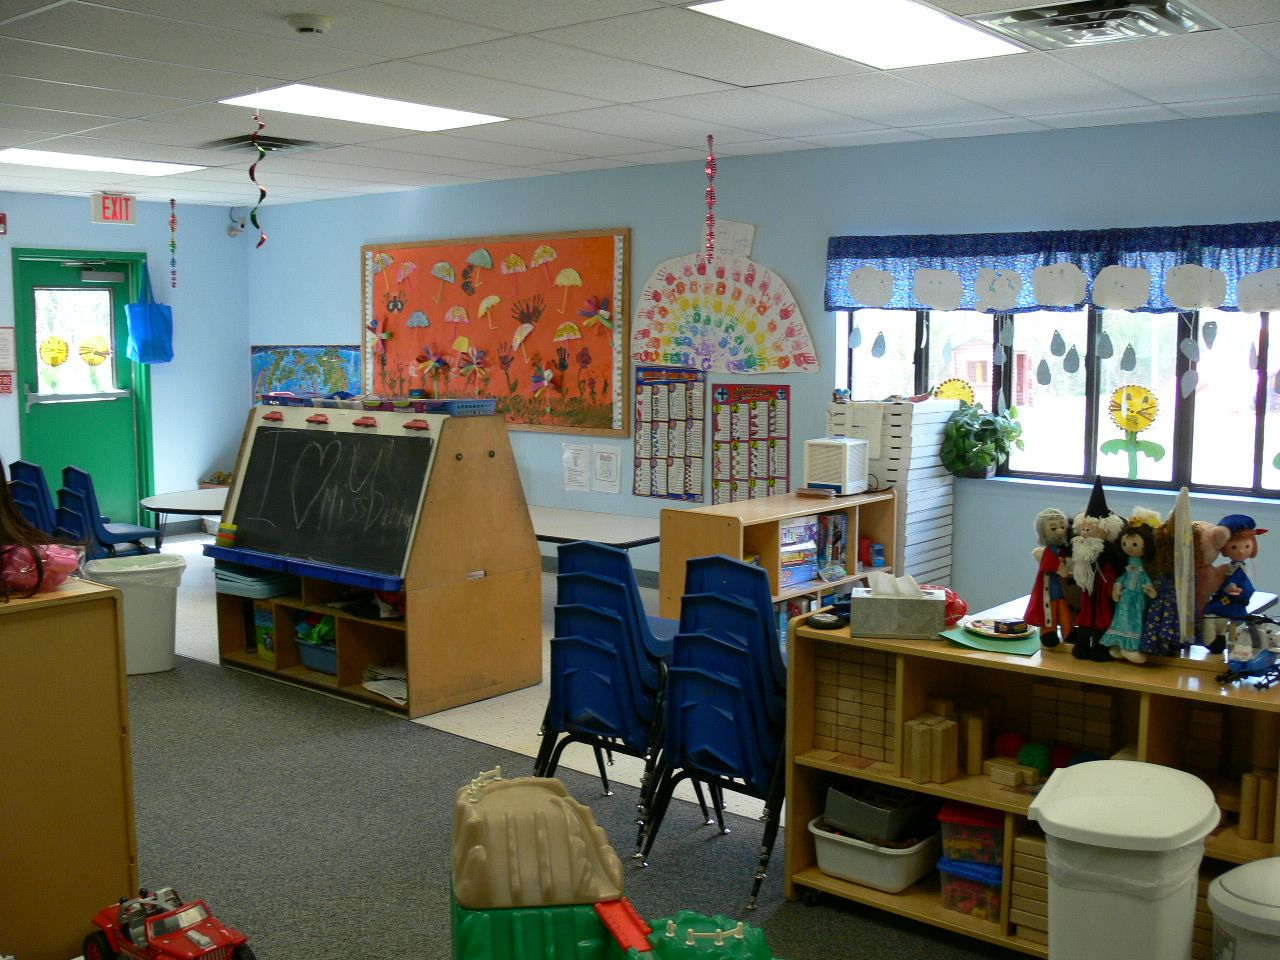 School Age Clroom Early Intervention Childhood Education Child Development Ideas